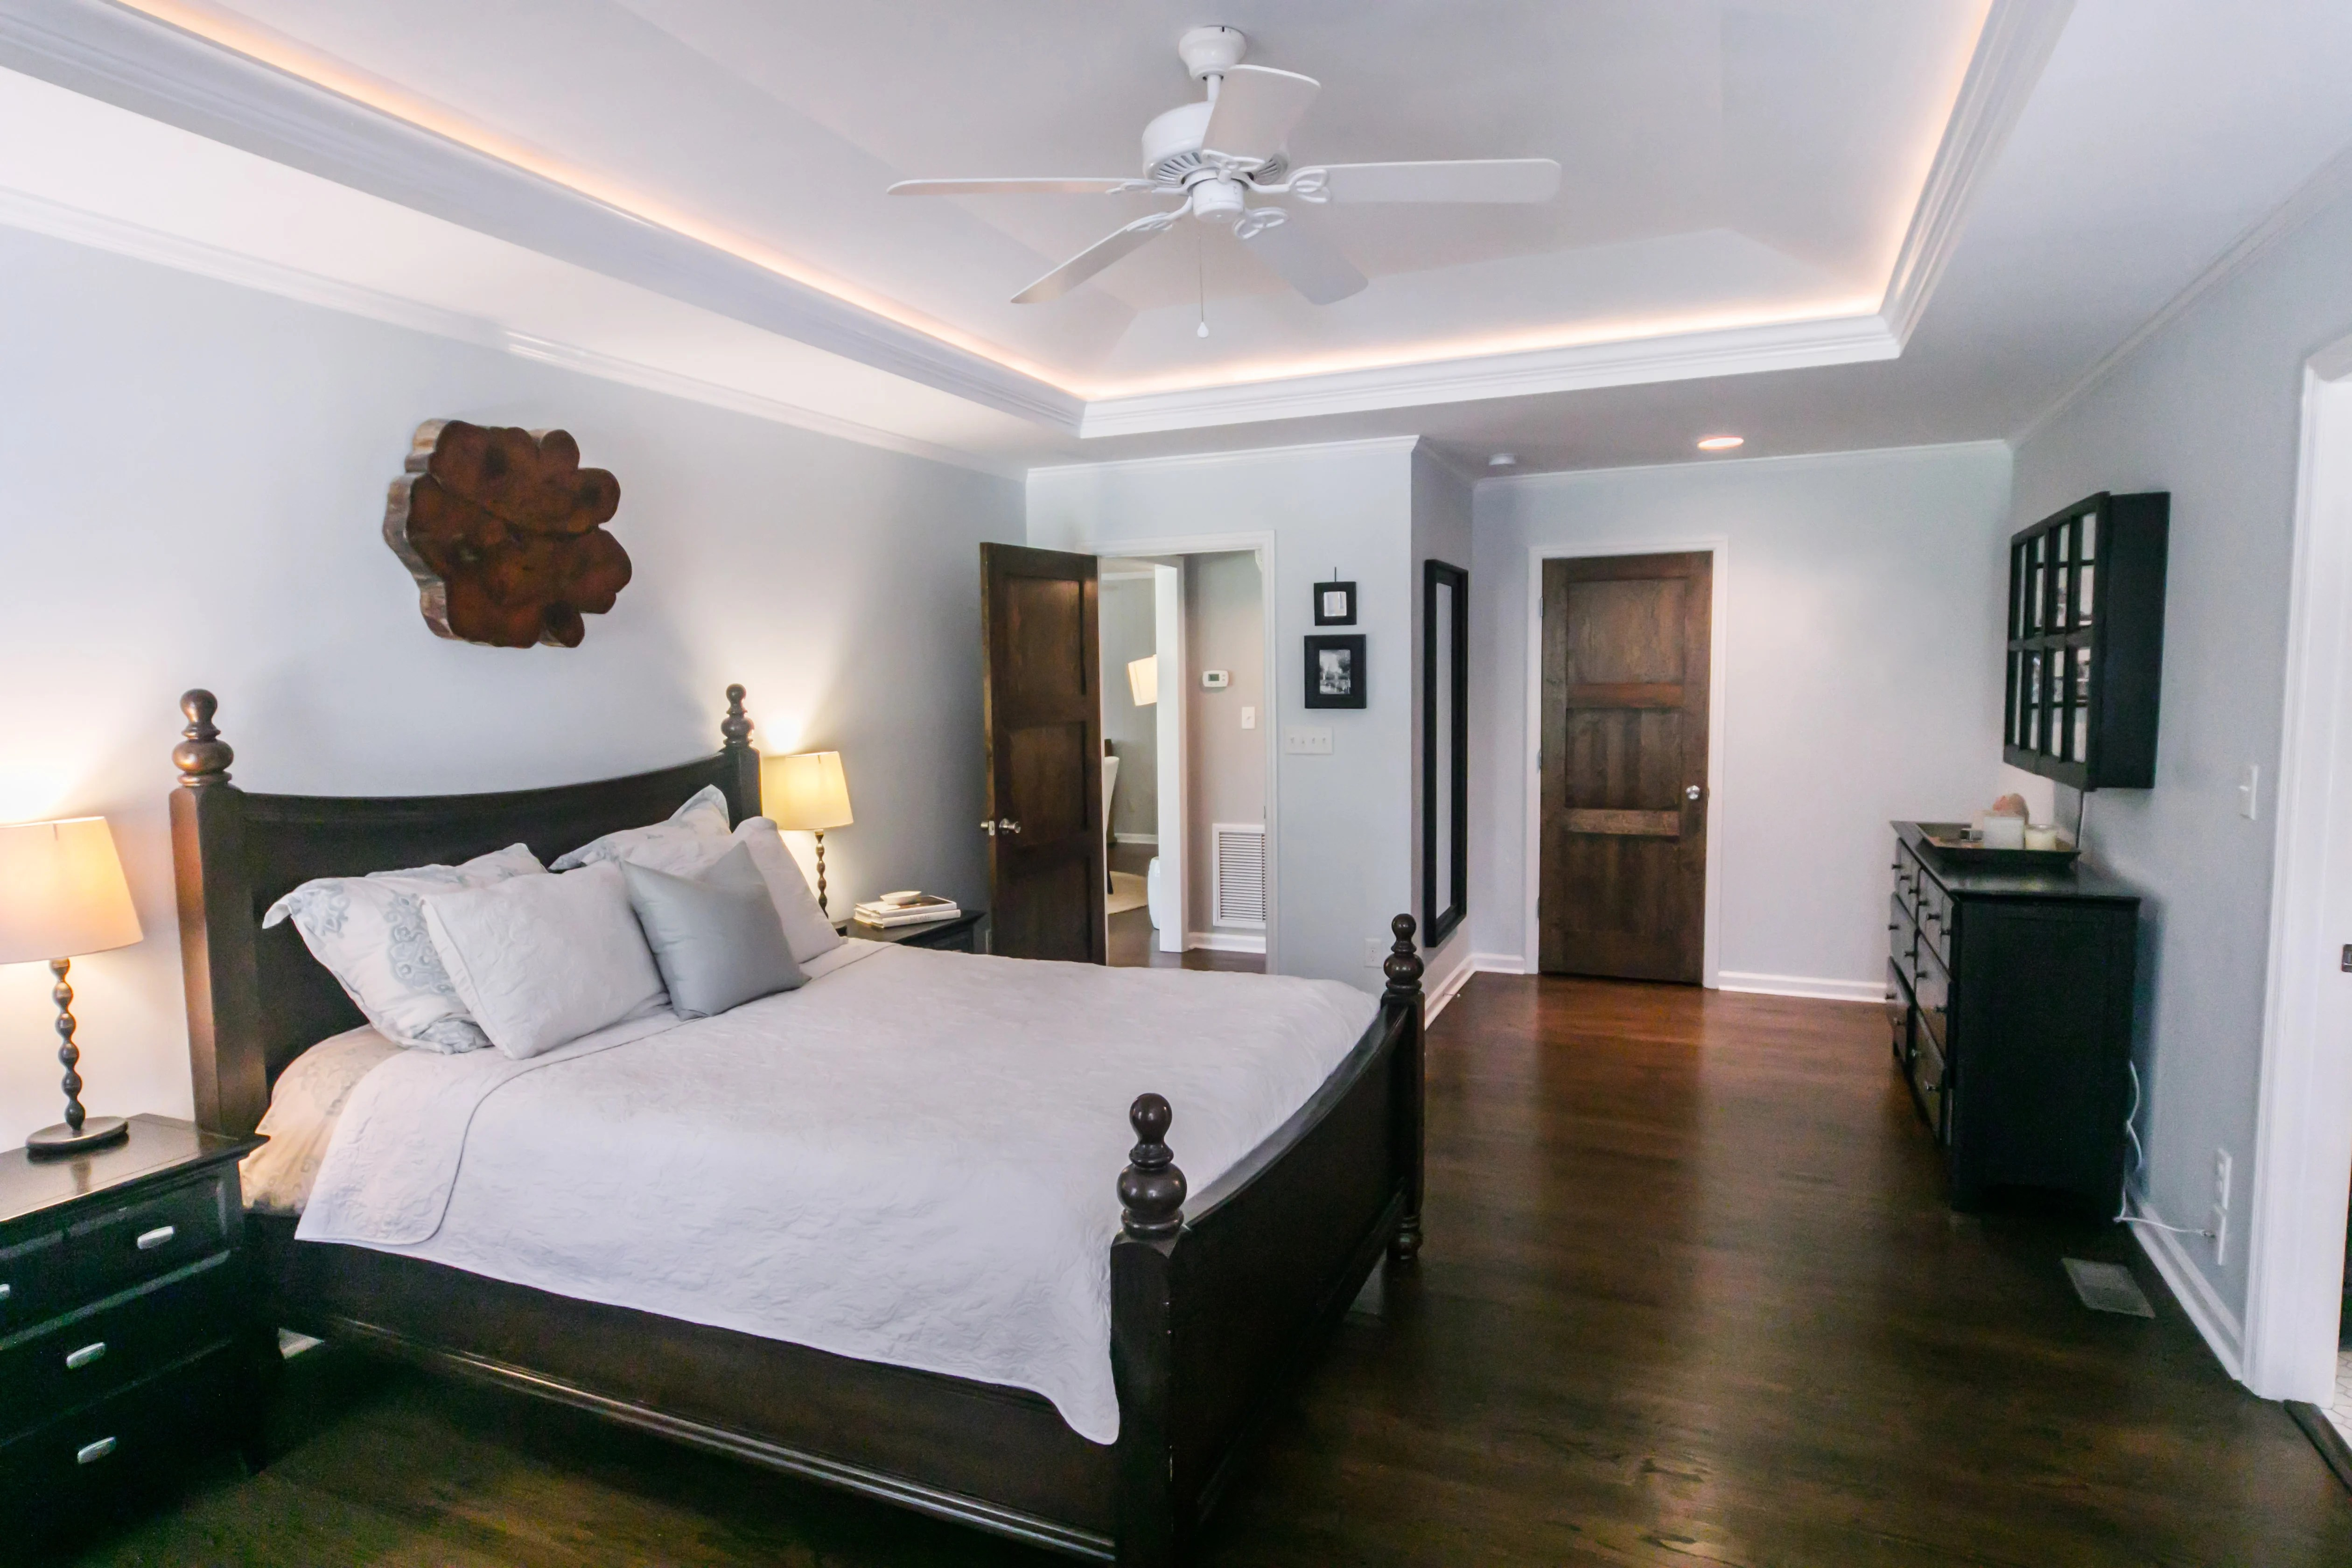 I am installing a ceiling fan into a bedroom that had no previous ceiling fan/light. 2021 False Ceiling Designs For Bedroom Homelane Blog